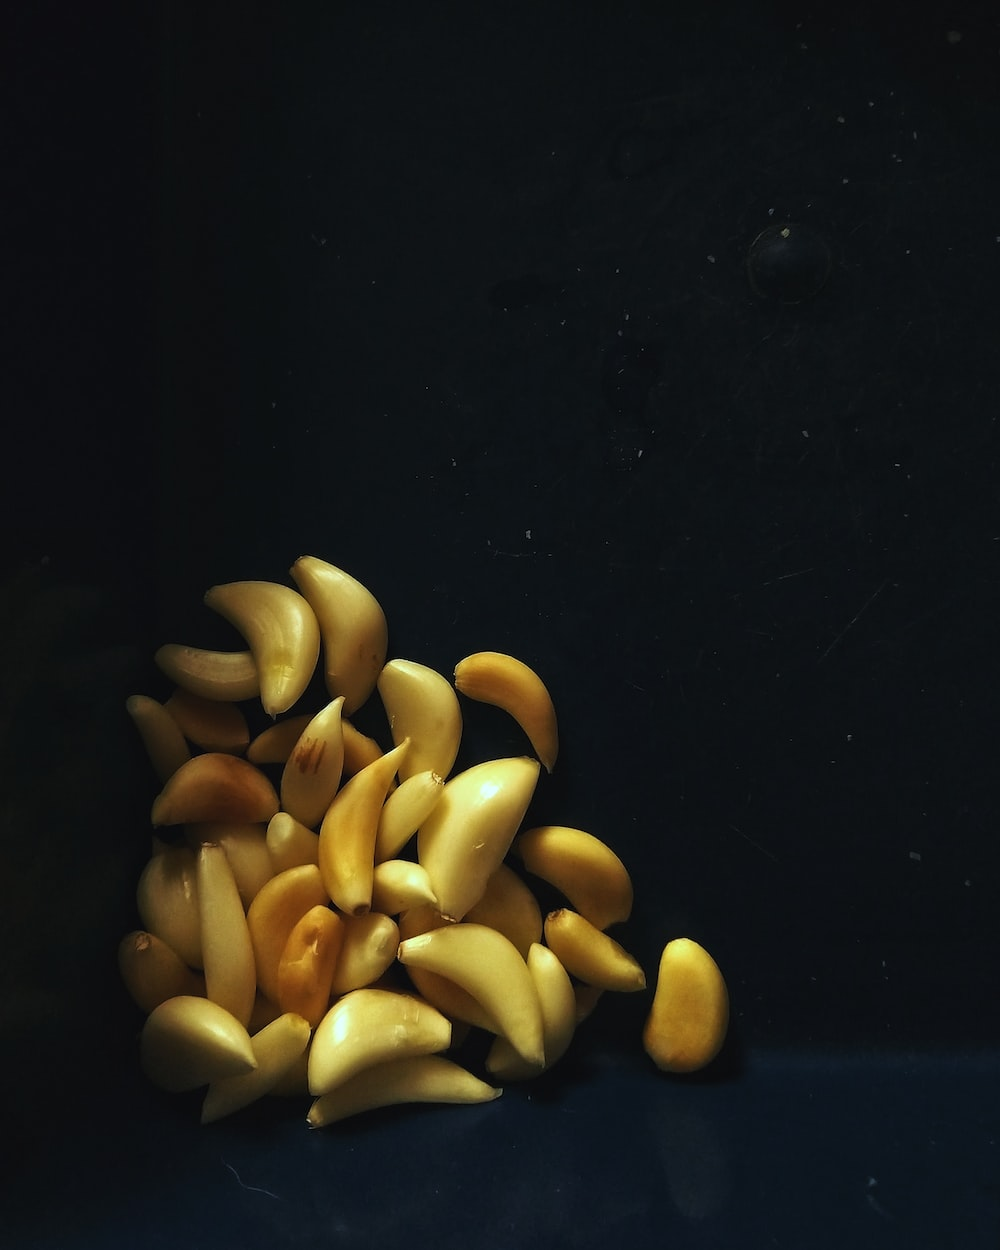 brown nuts on black surface